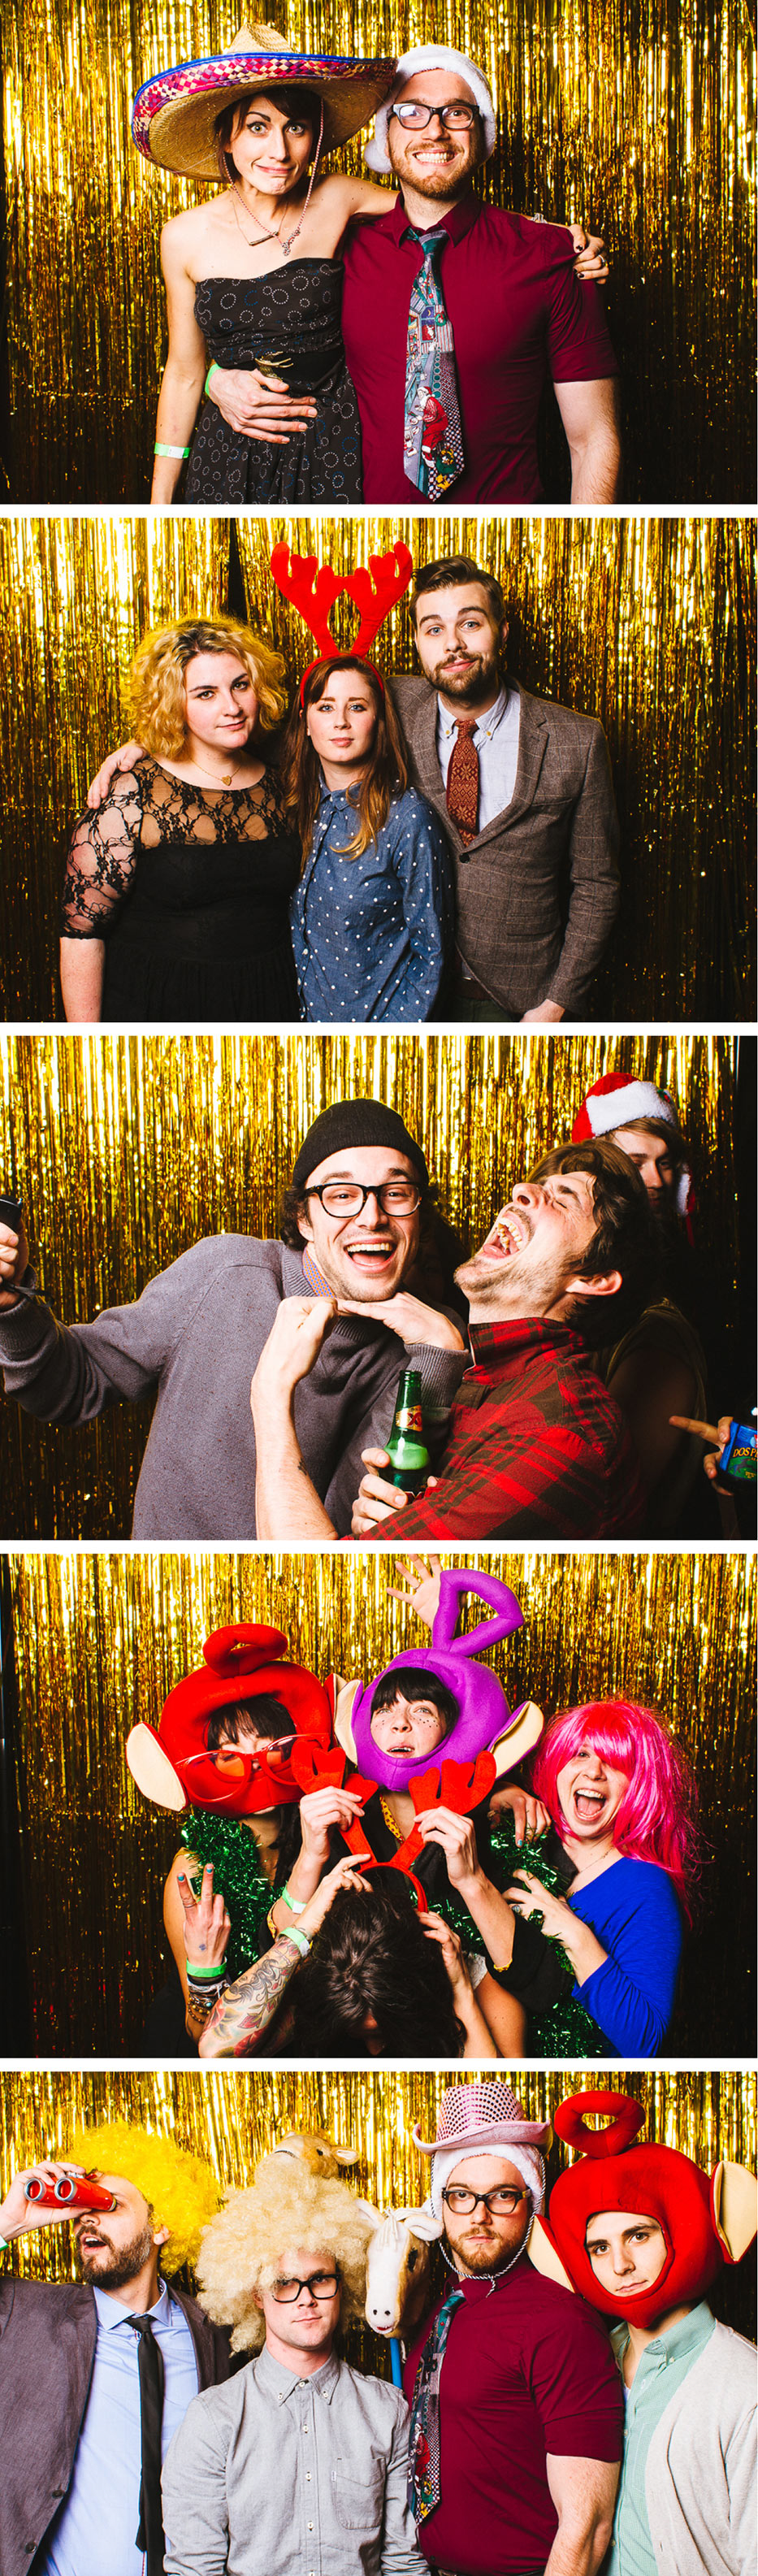 CK-Photo-Nashville-Photobooth-B7.jpg